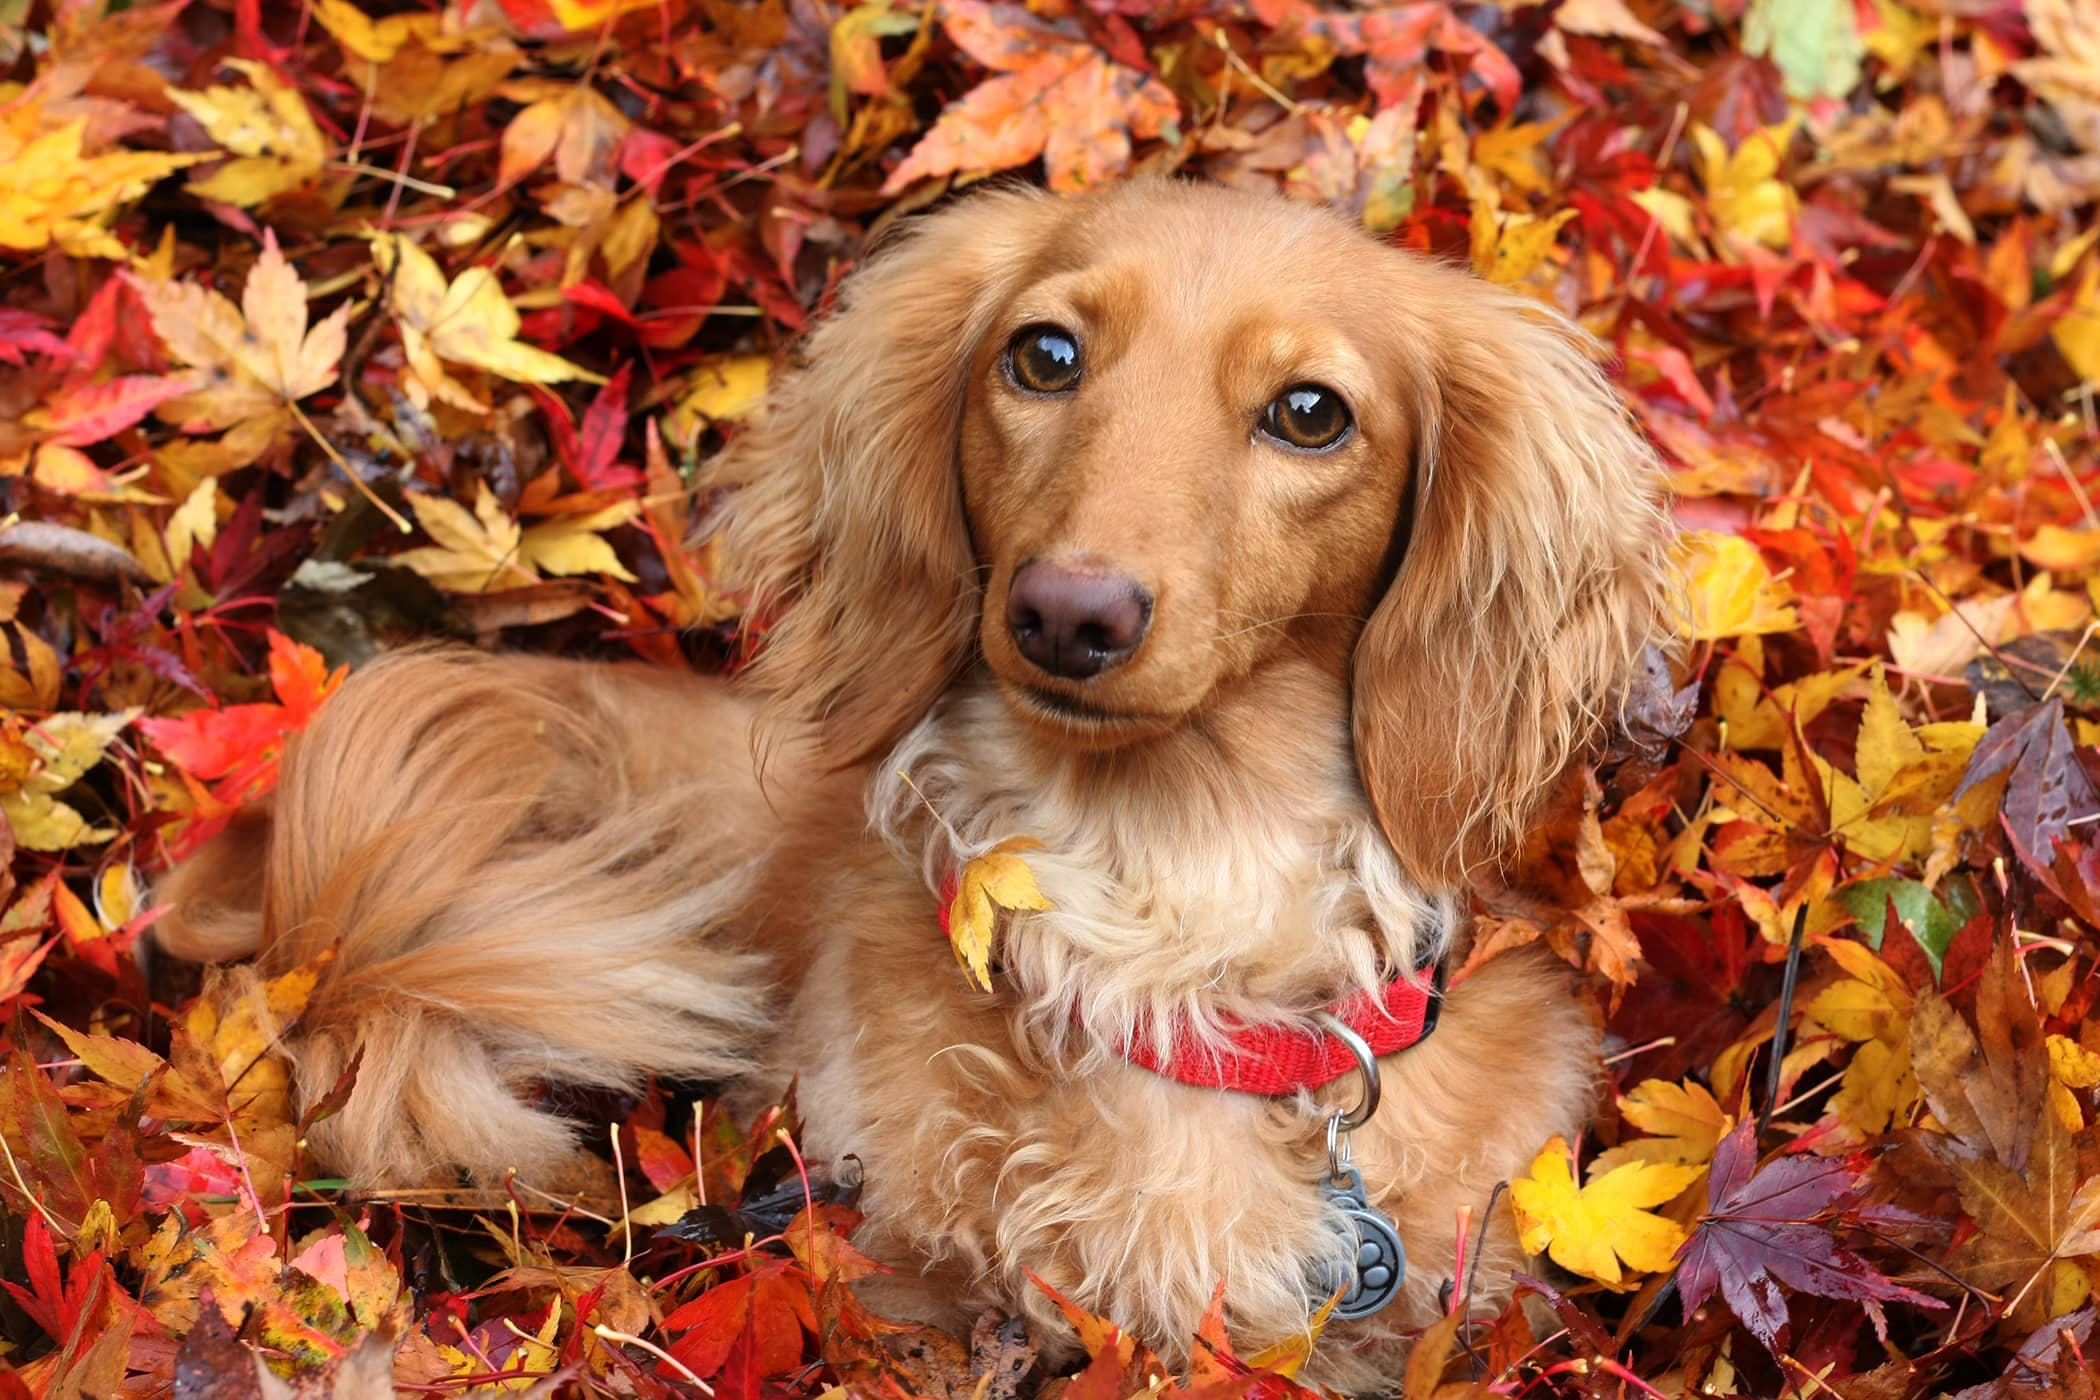 Cute Dachshund Wallpaper Natural Urinary Tract Infection Remedies In Dogs